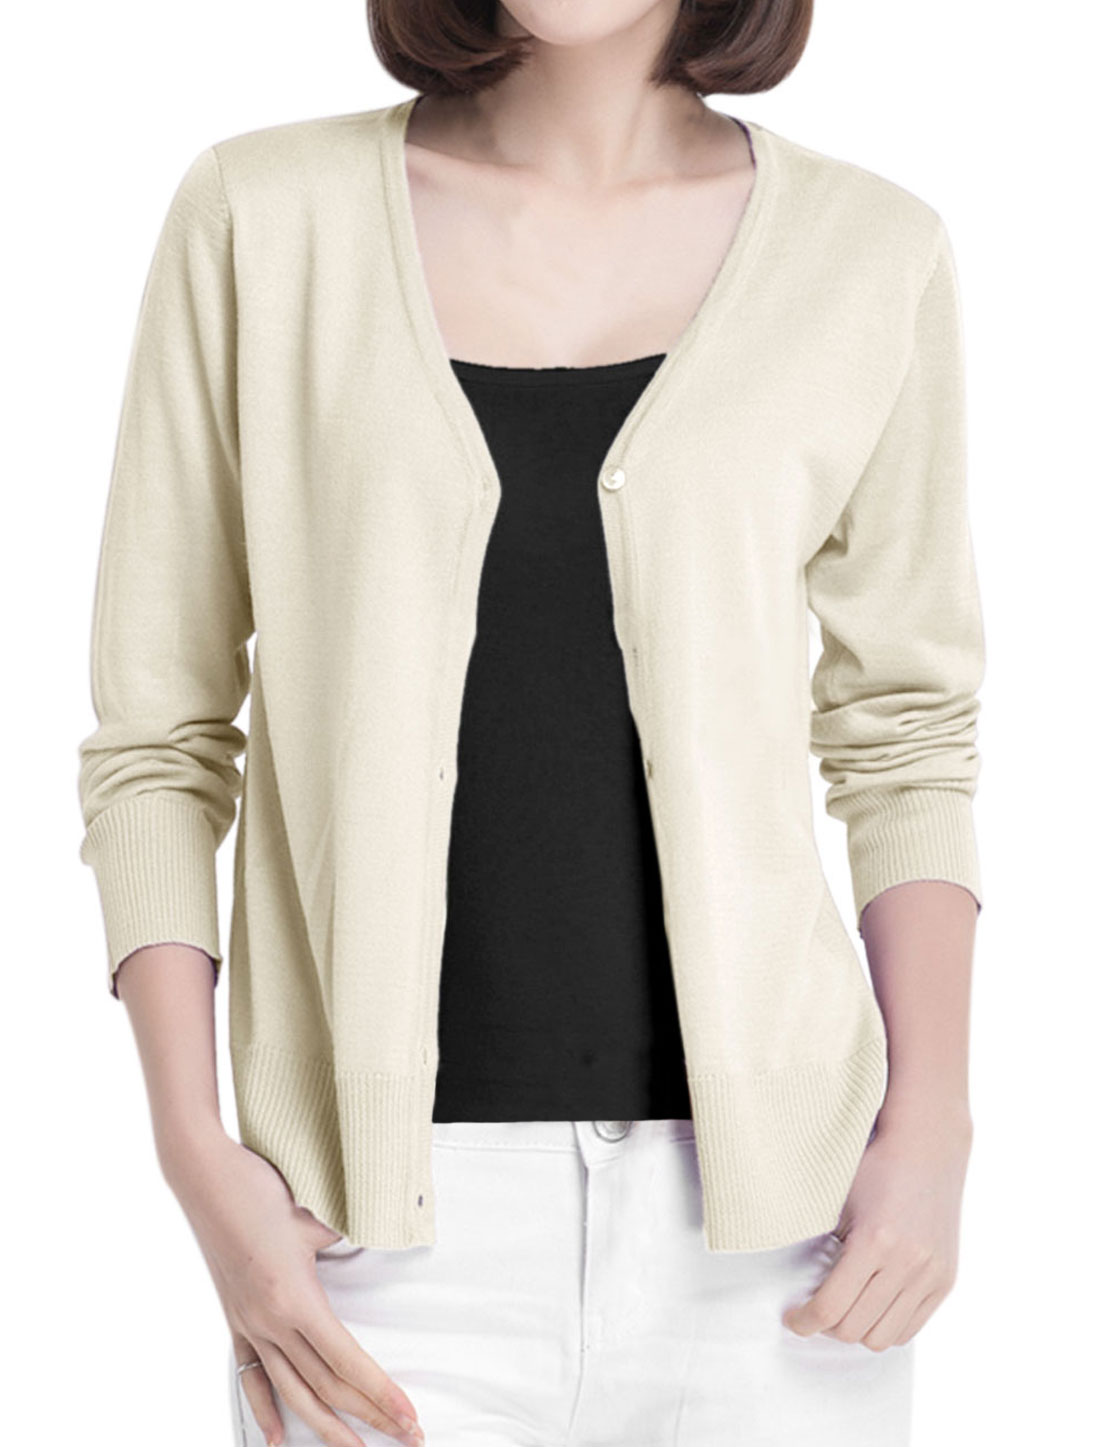 Cozy Fit Soft Fashion Button Closure Front Knit Cardigan for Lady Beige S